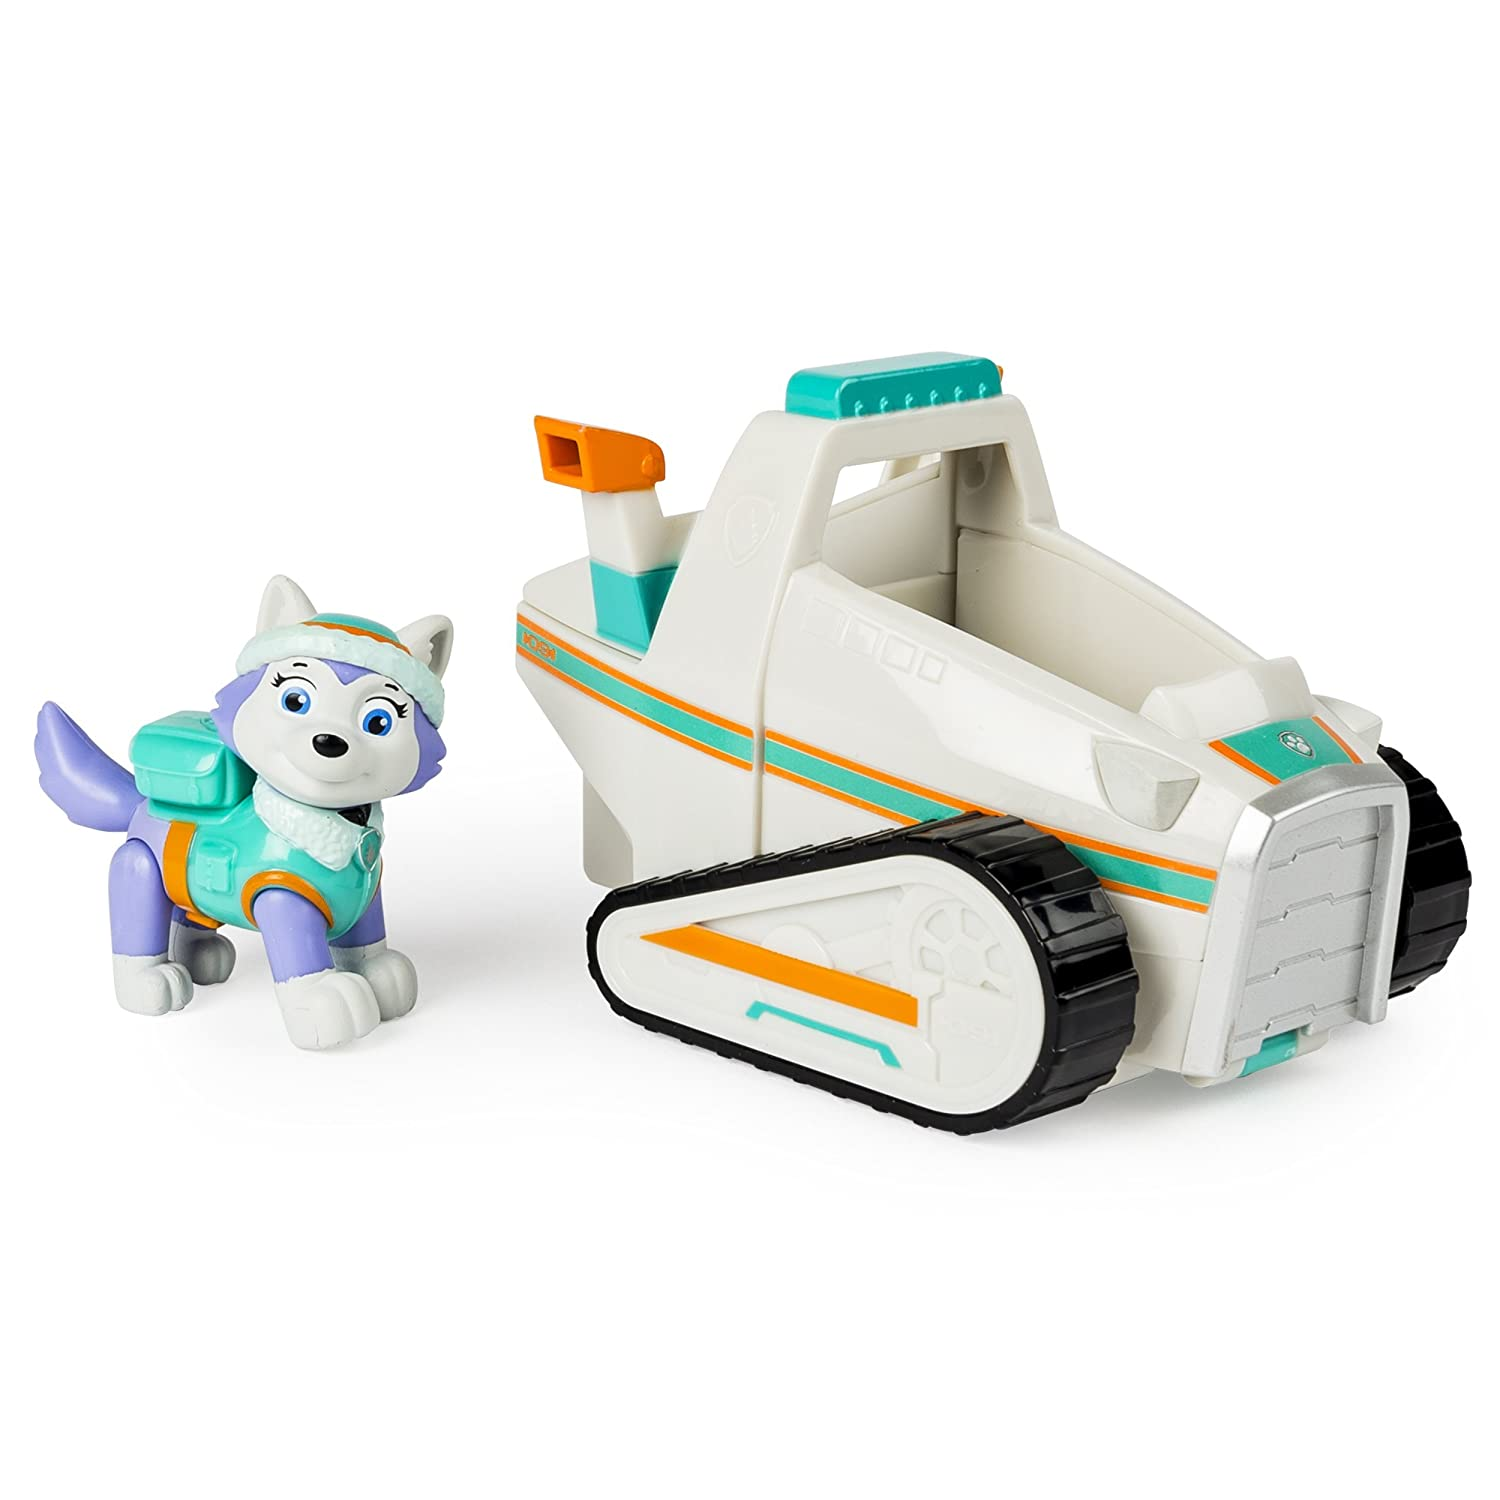 Paw Patrol Everest's Rescue Snowmobile, Vehicle and Figure Spin Master SPJ95 20070568-6026601